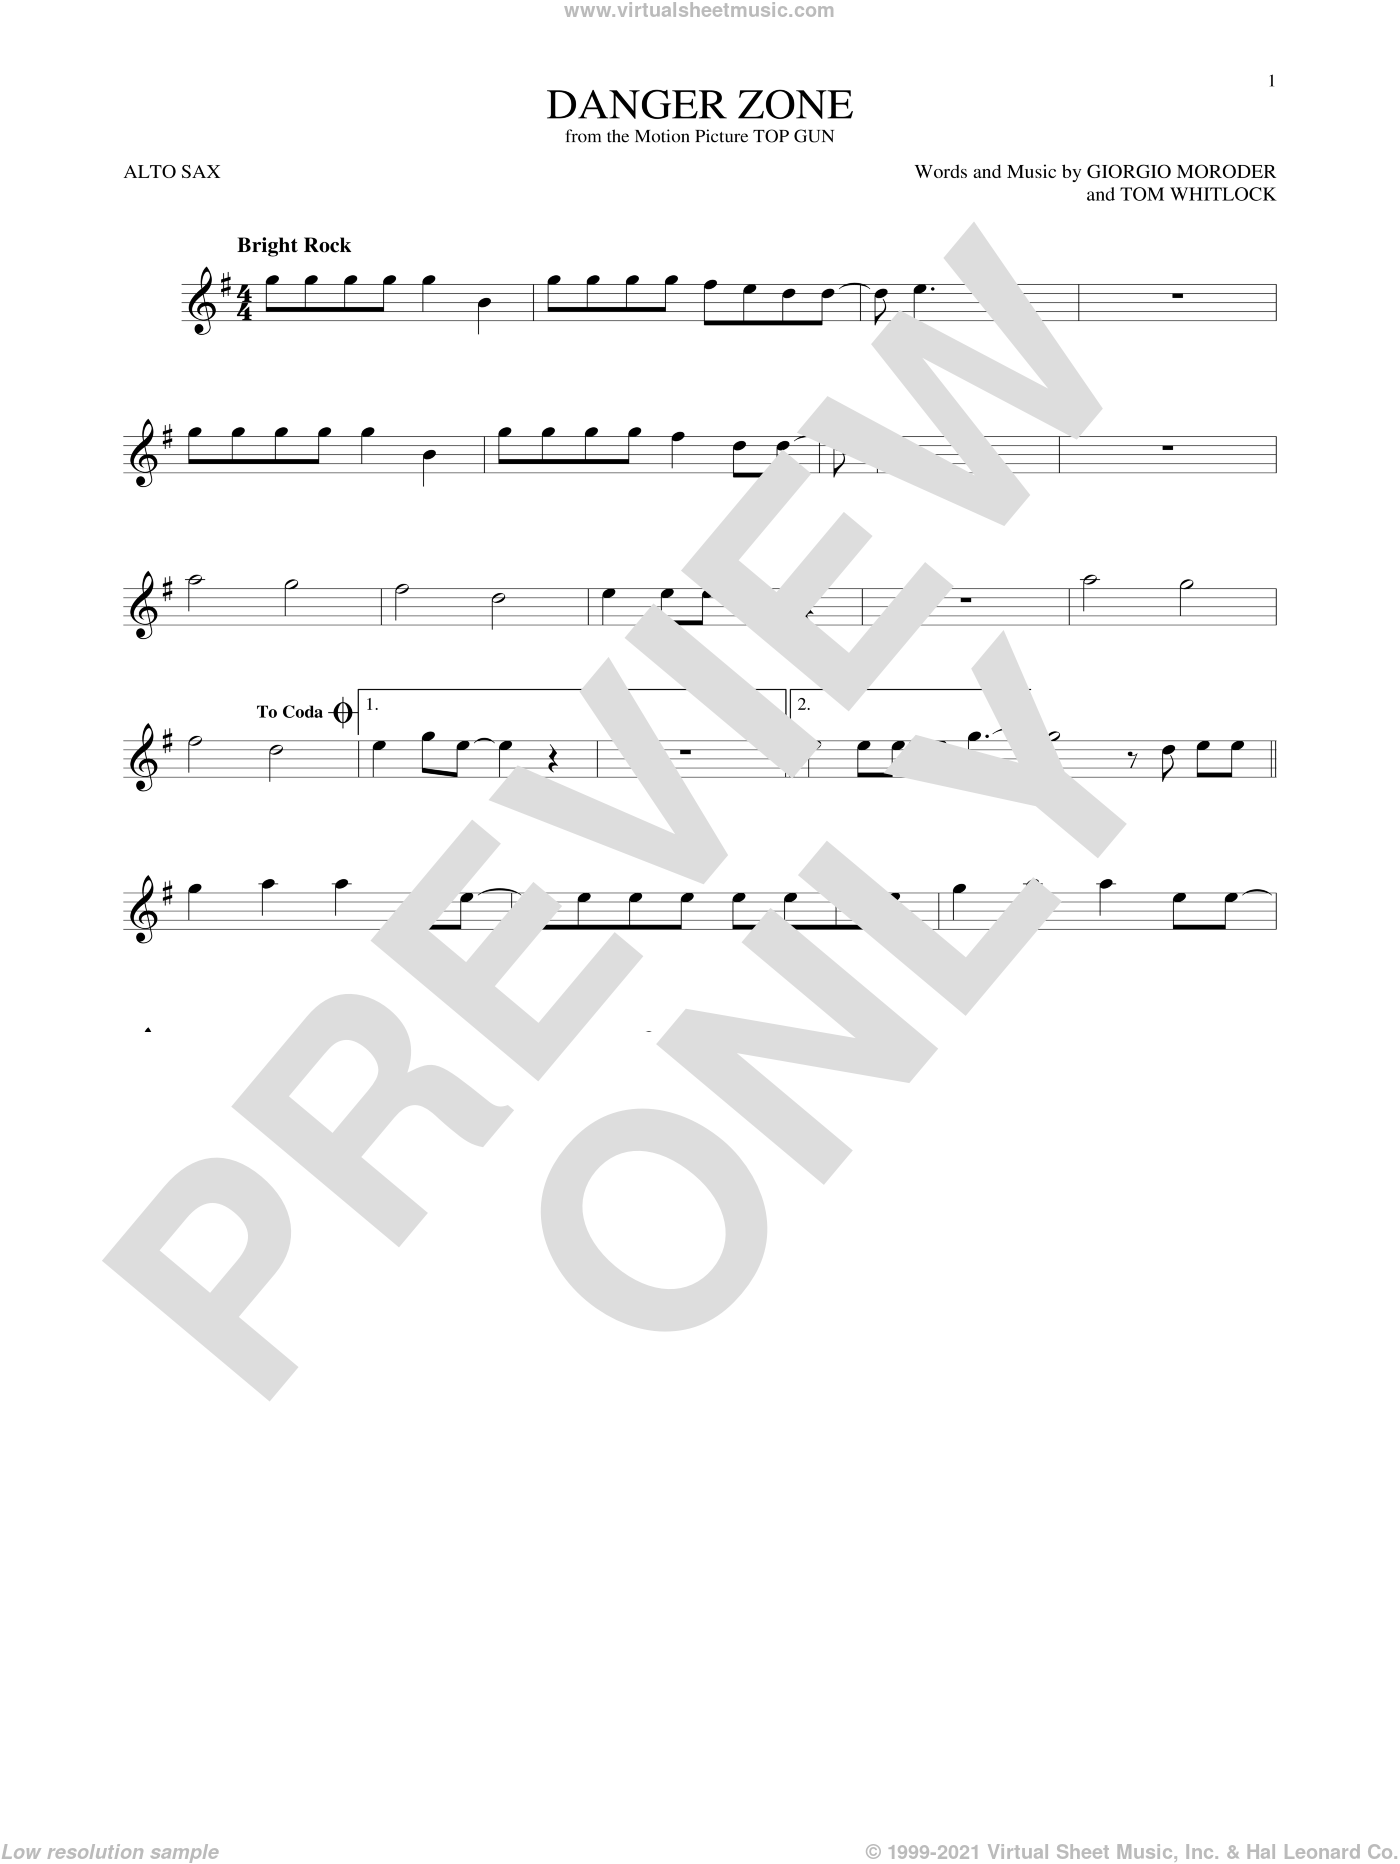 Danger Zone sheet music for alto saxophone solo by Kenny Loggins, Giorgio Moroder and Tom Whitlock, intermediate skill level